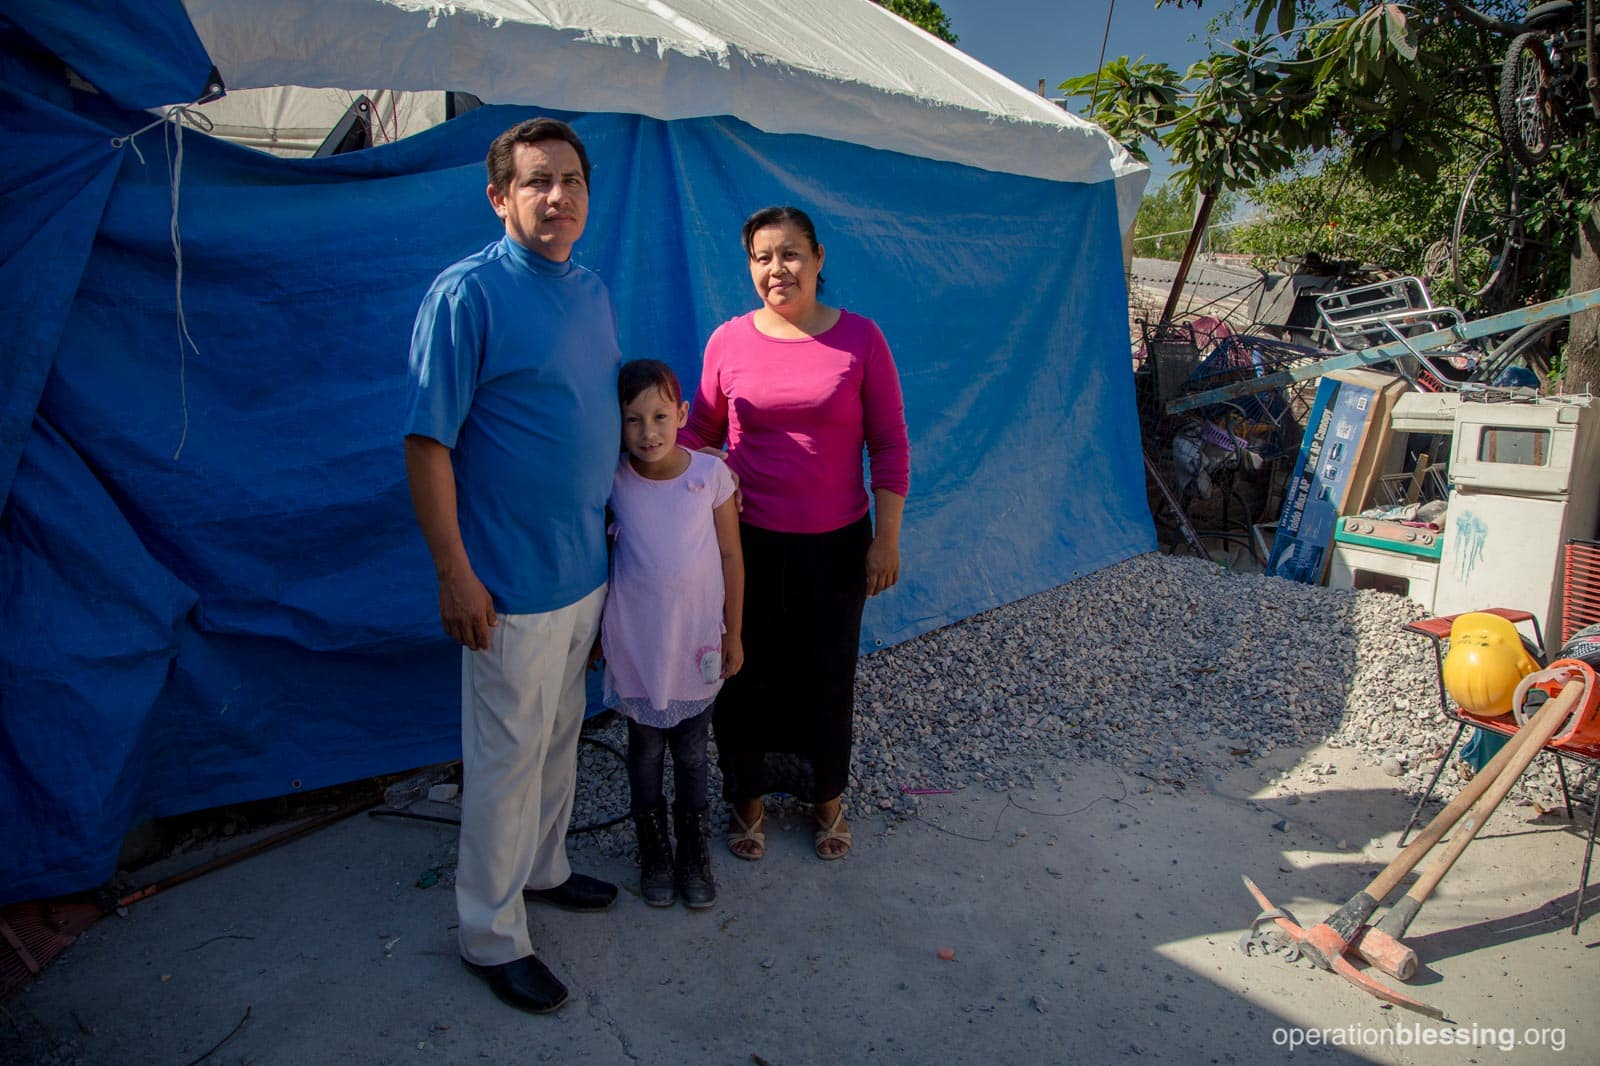 Pastor Rafael and his family lived in this tent after an earthquake destroyed their home in Mexico.